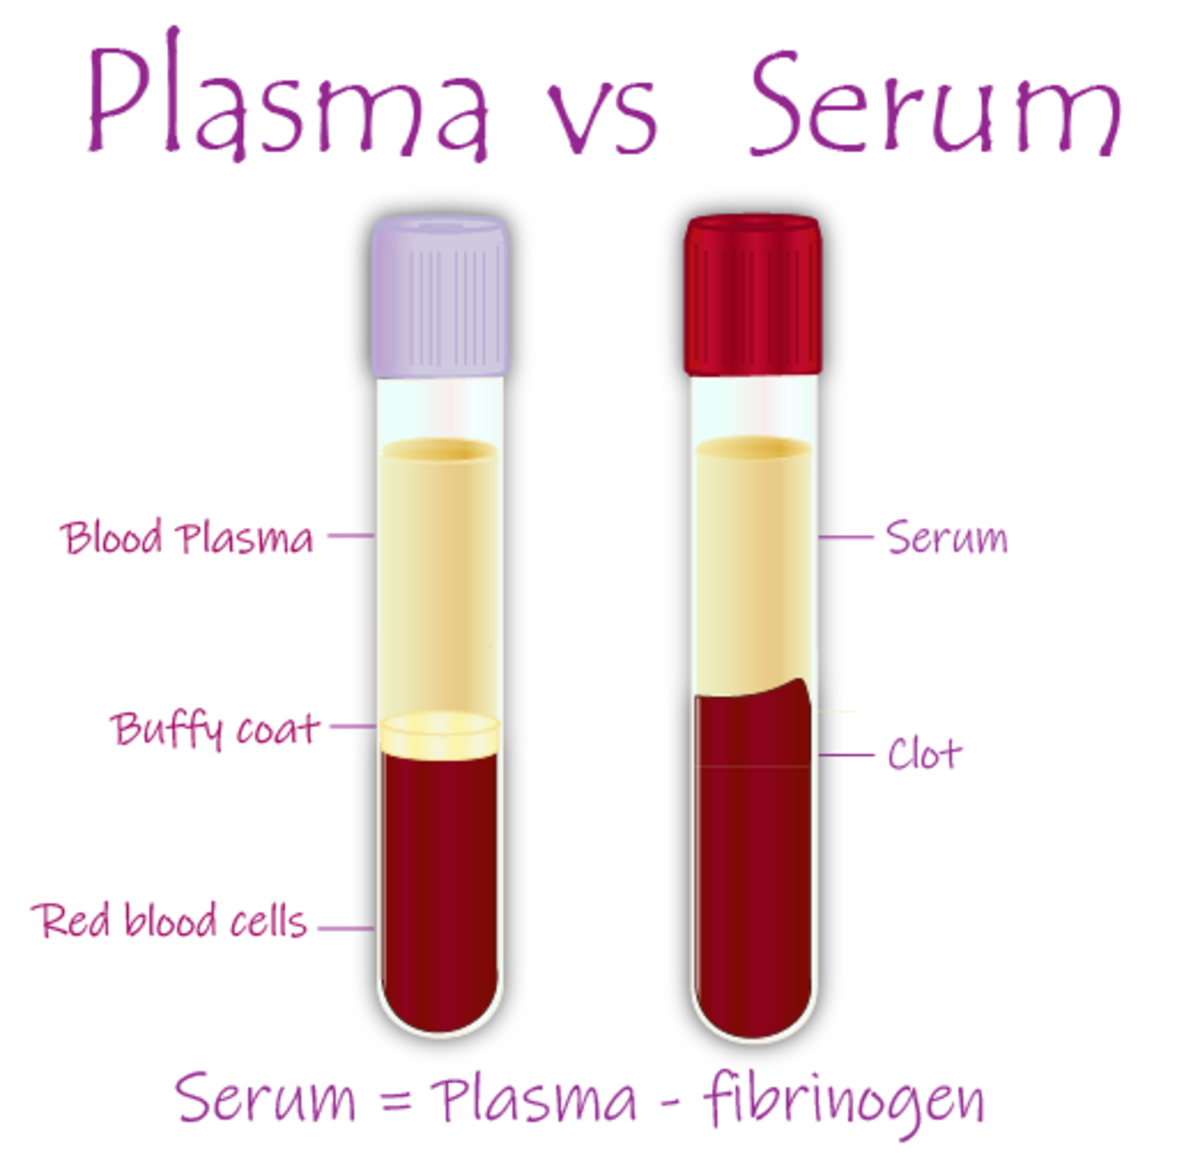 Plasma vs Serum